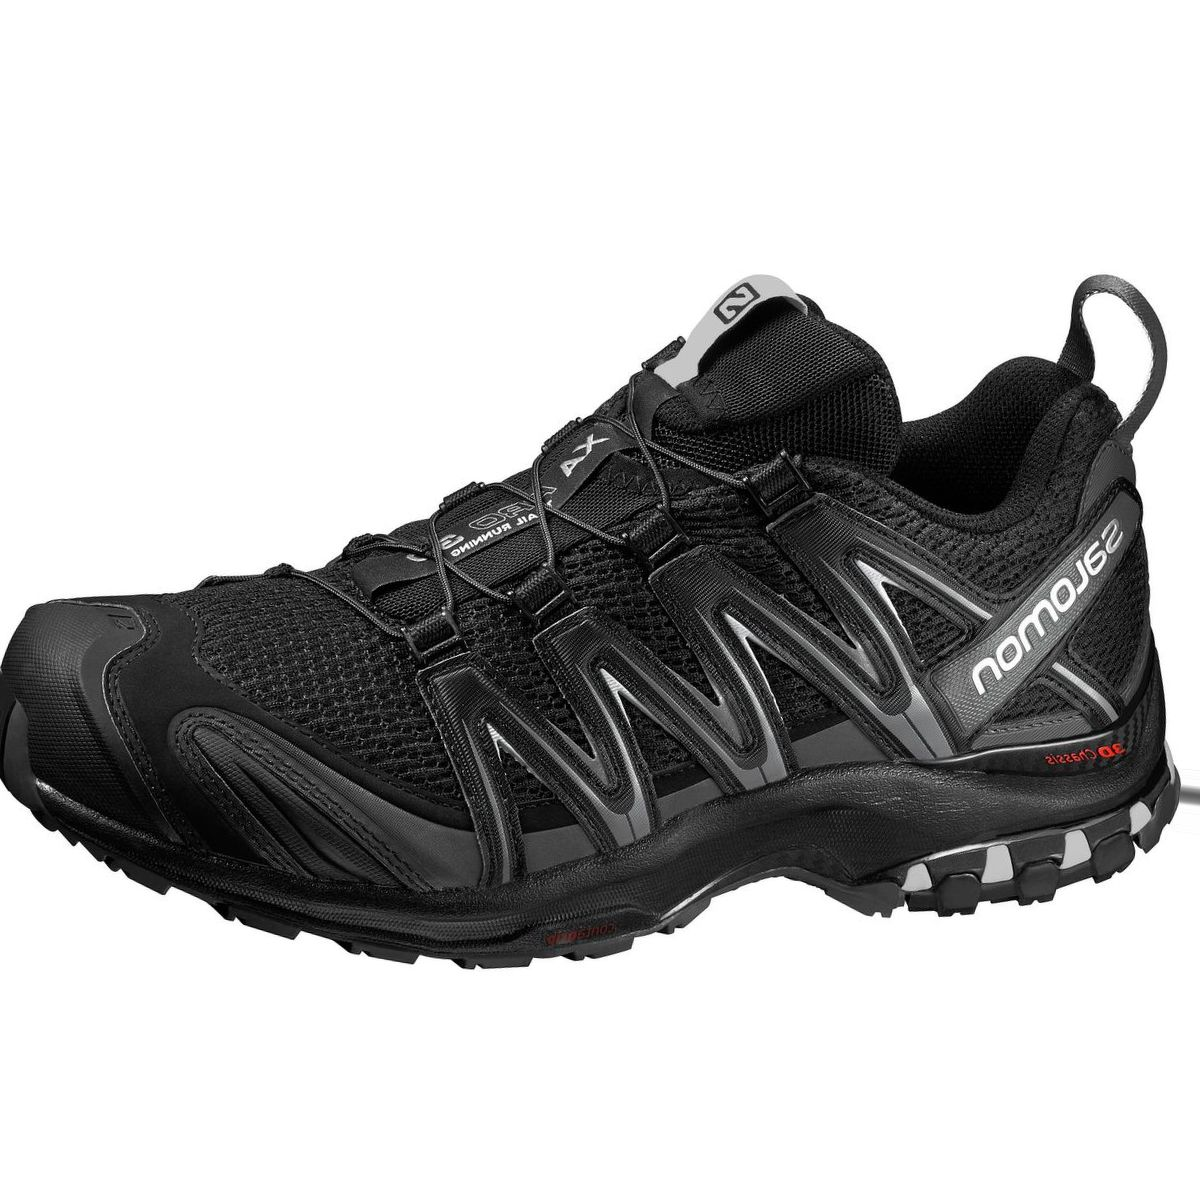 Salomon XA Pro 3D Wide Trail Running Shoe - Men's